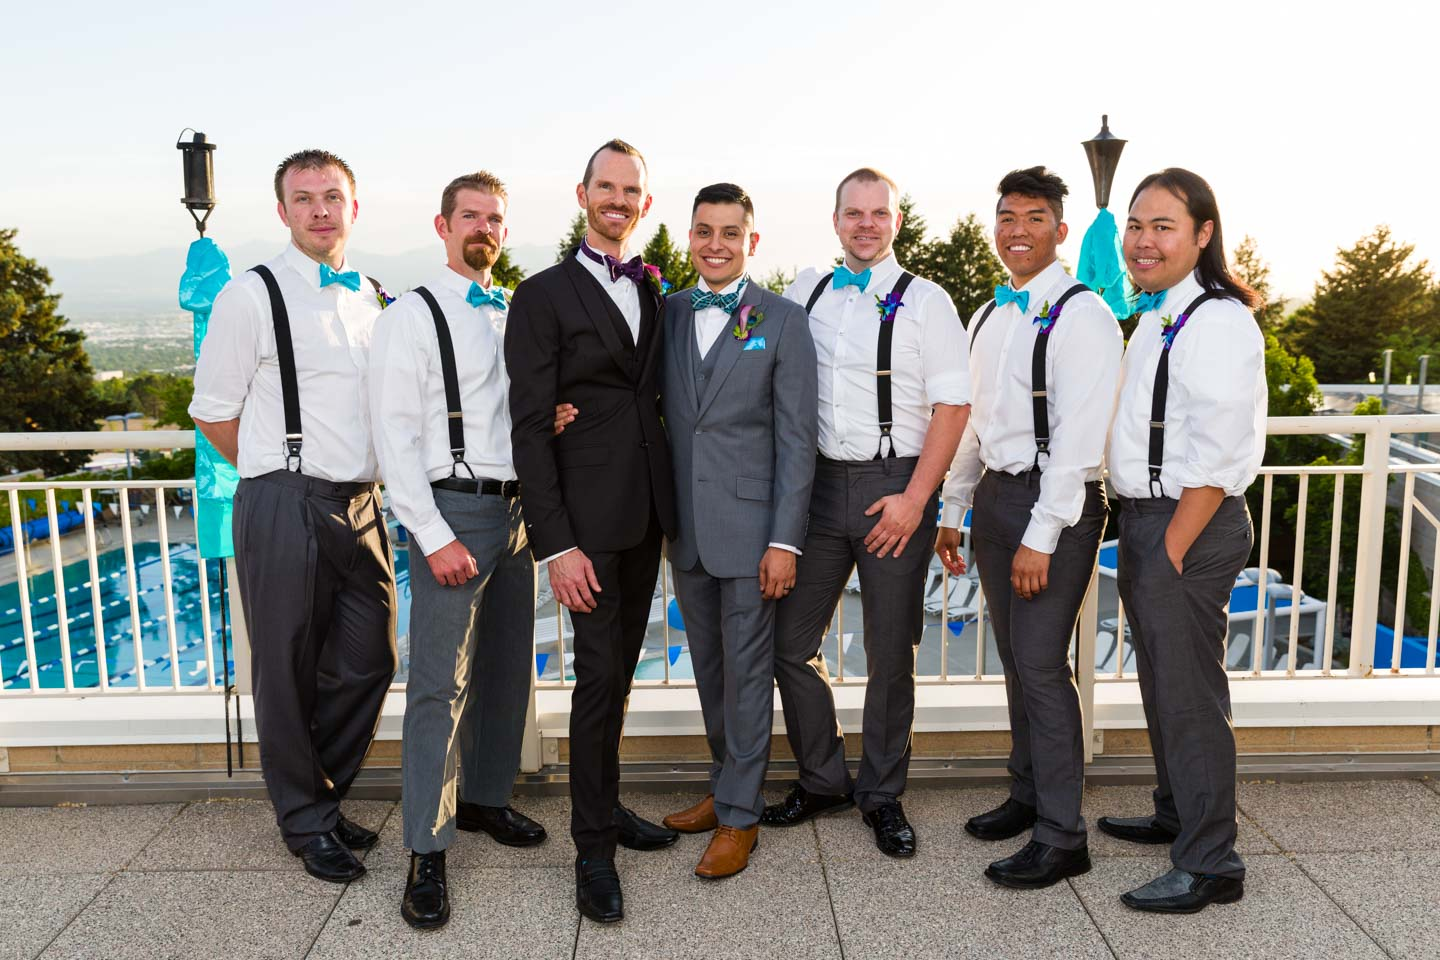 Grooms with the groomsmen